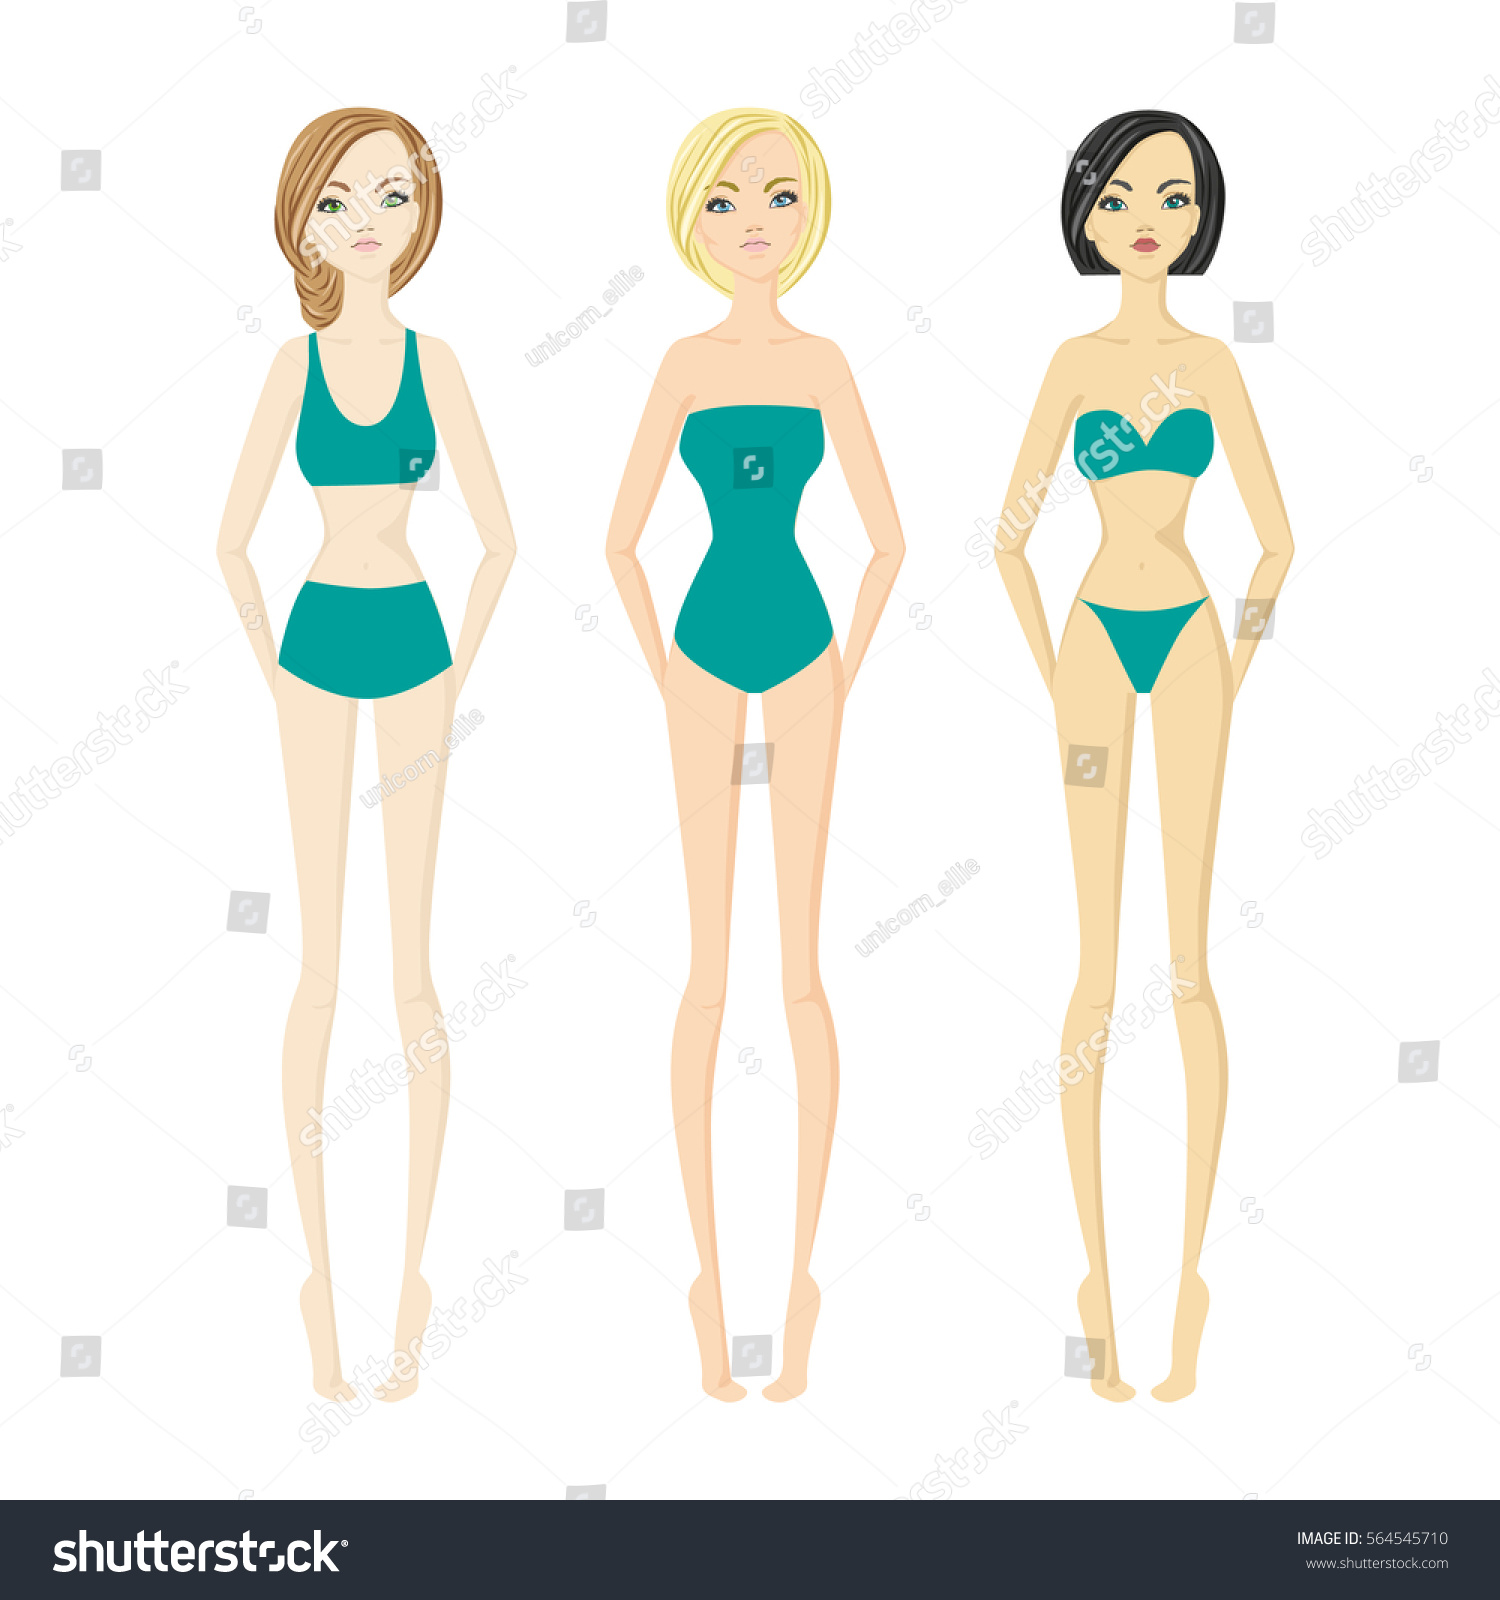 1aacb014fcb38 Three Girls Bathing Suits Stock Vector (Royalty Free) 564545710 ...